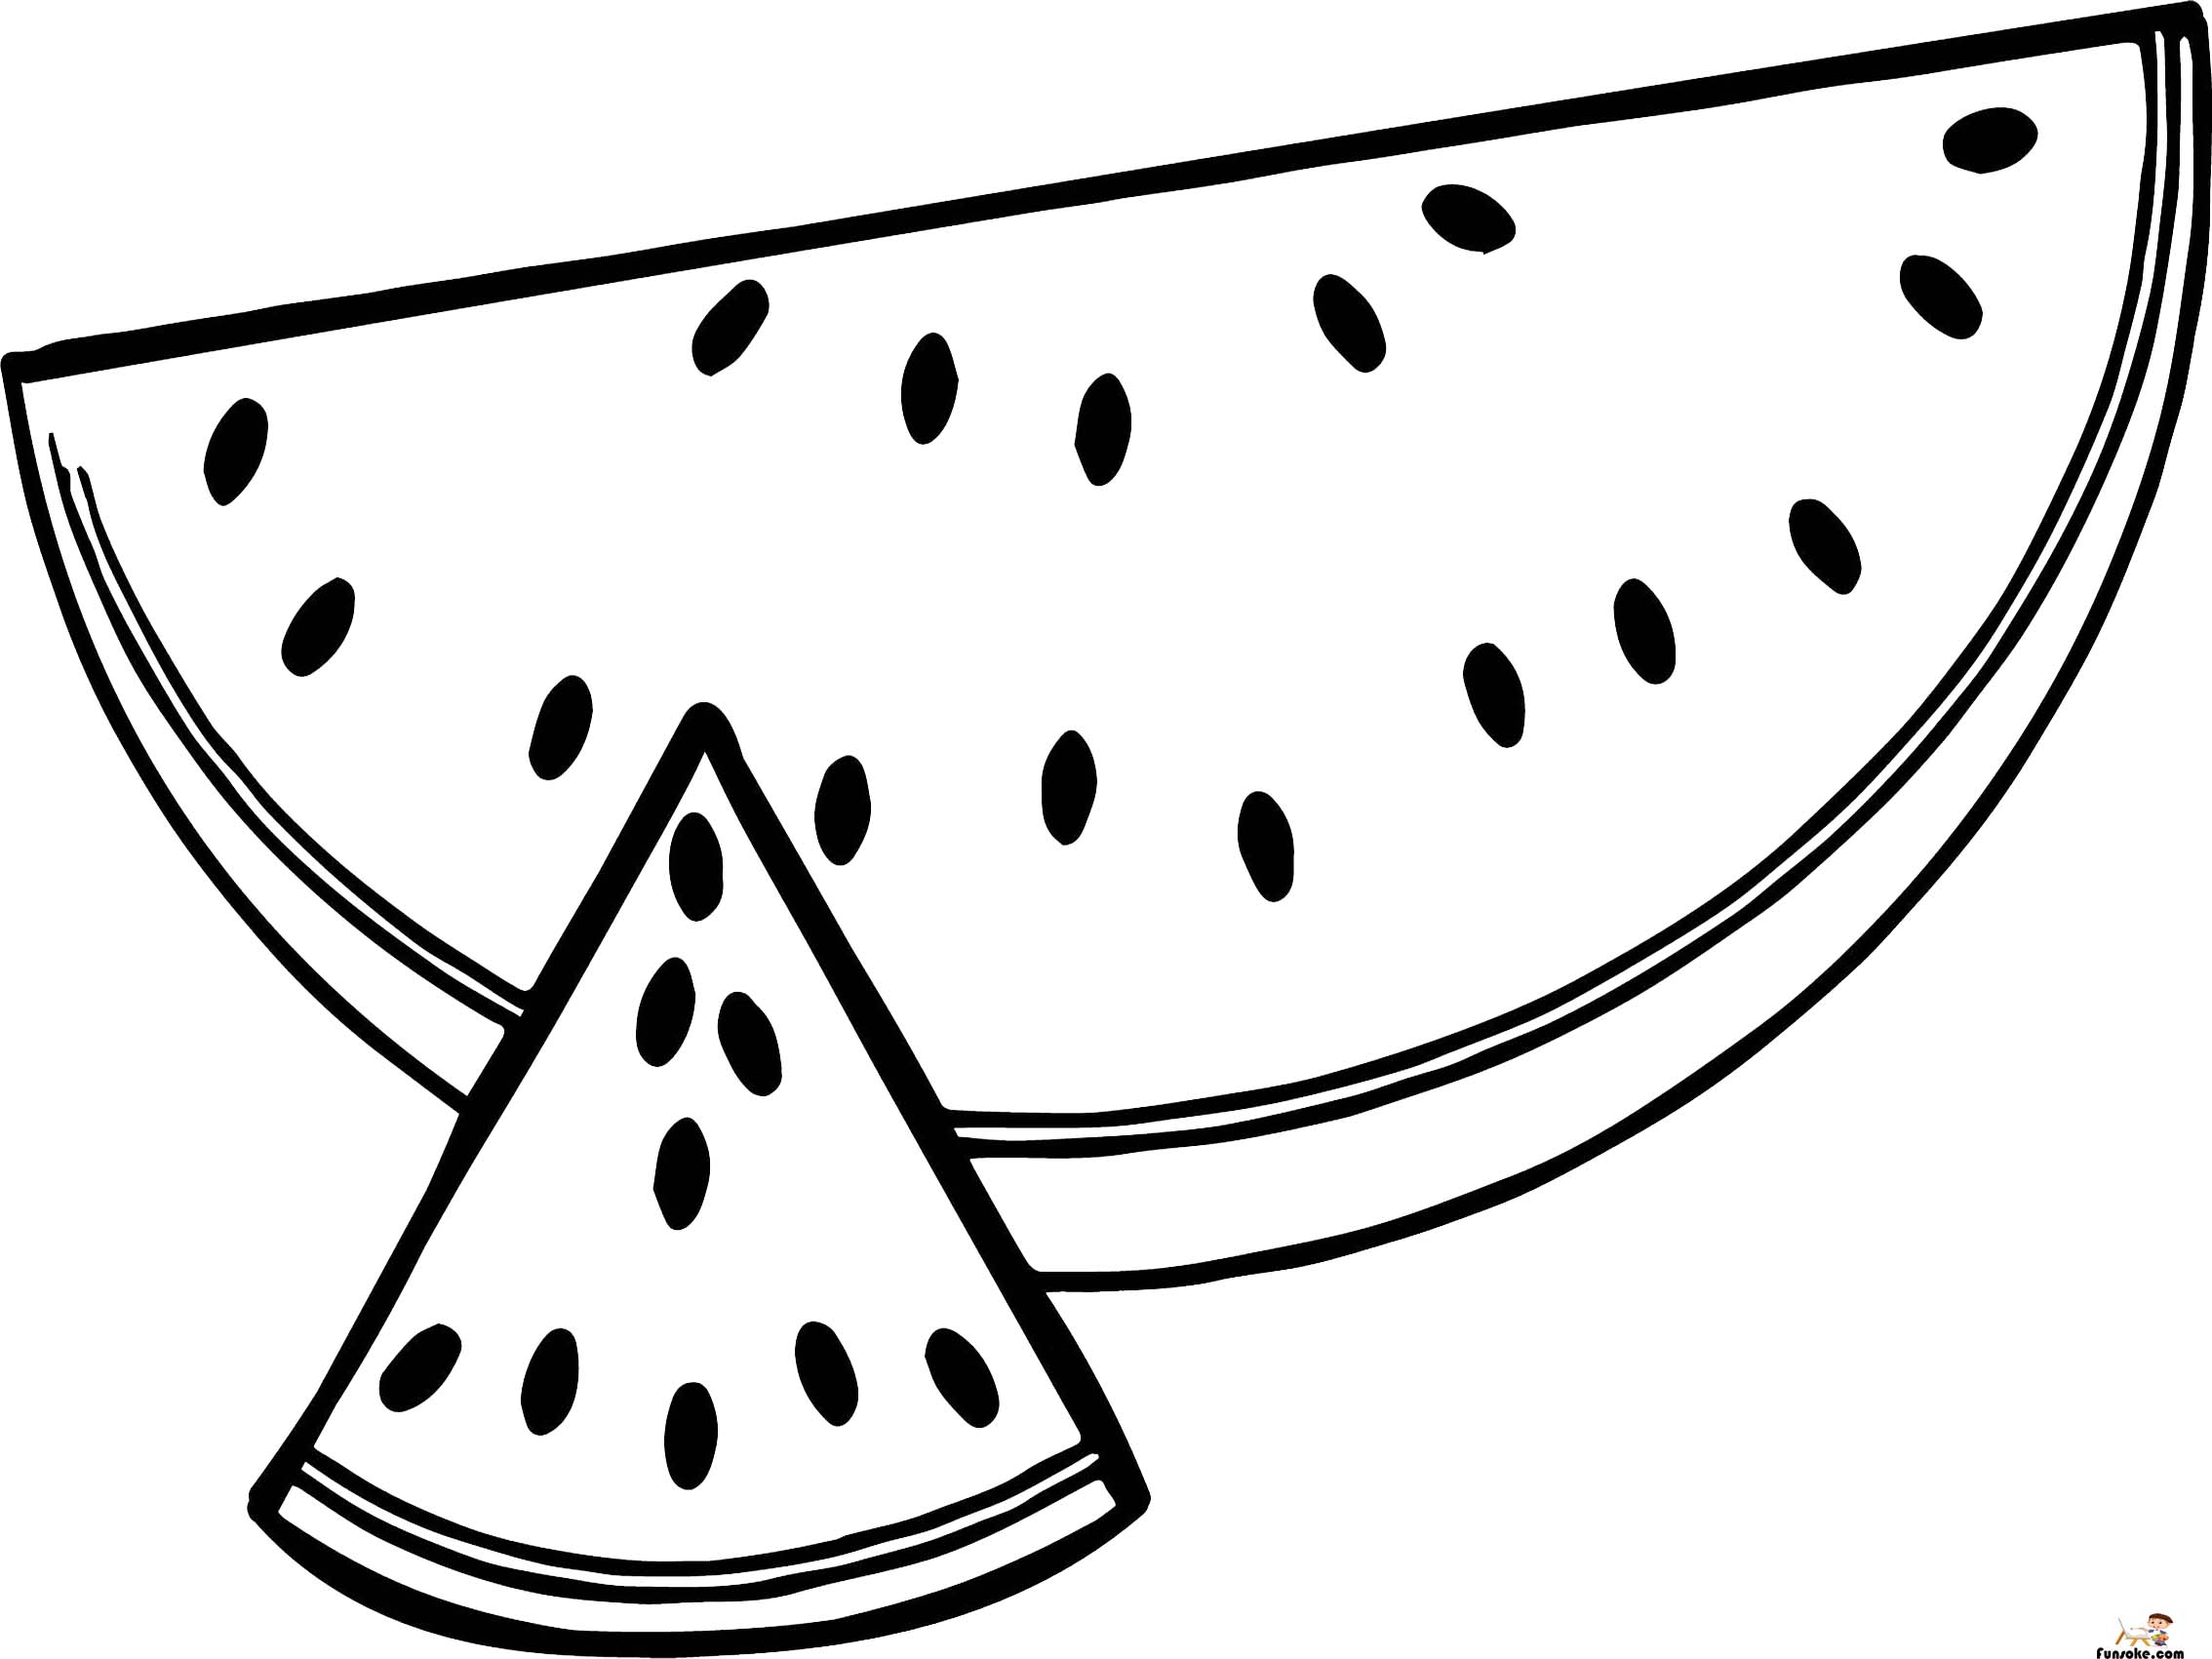 watermelon coloring image watermelon coloring pages preschoolers funsoke watermelon image coloring